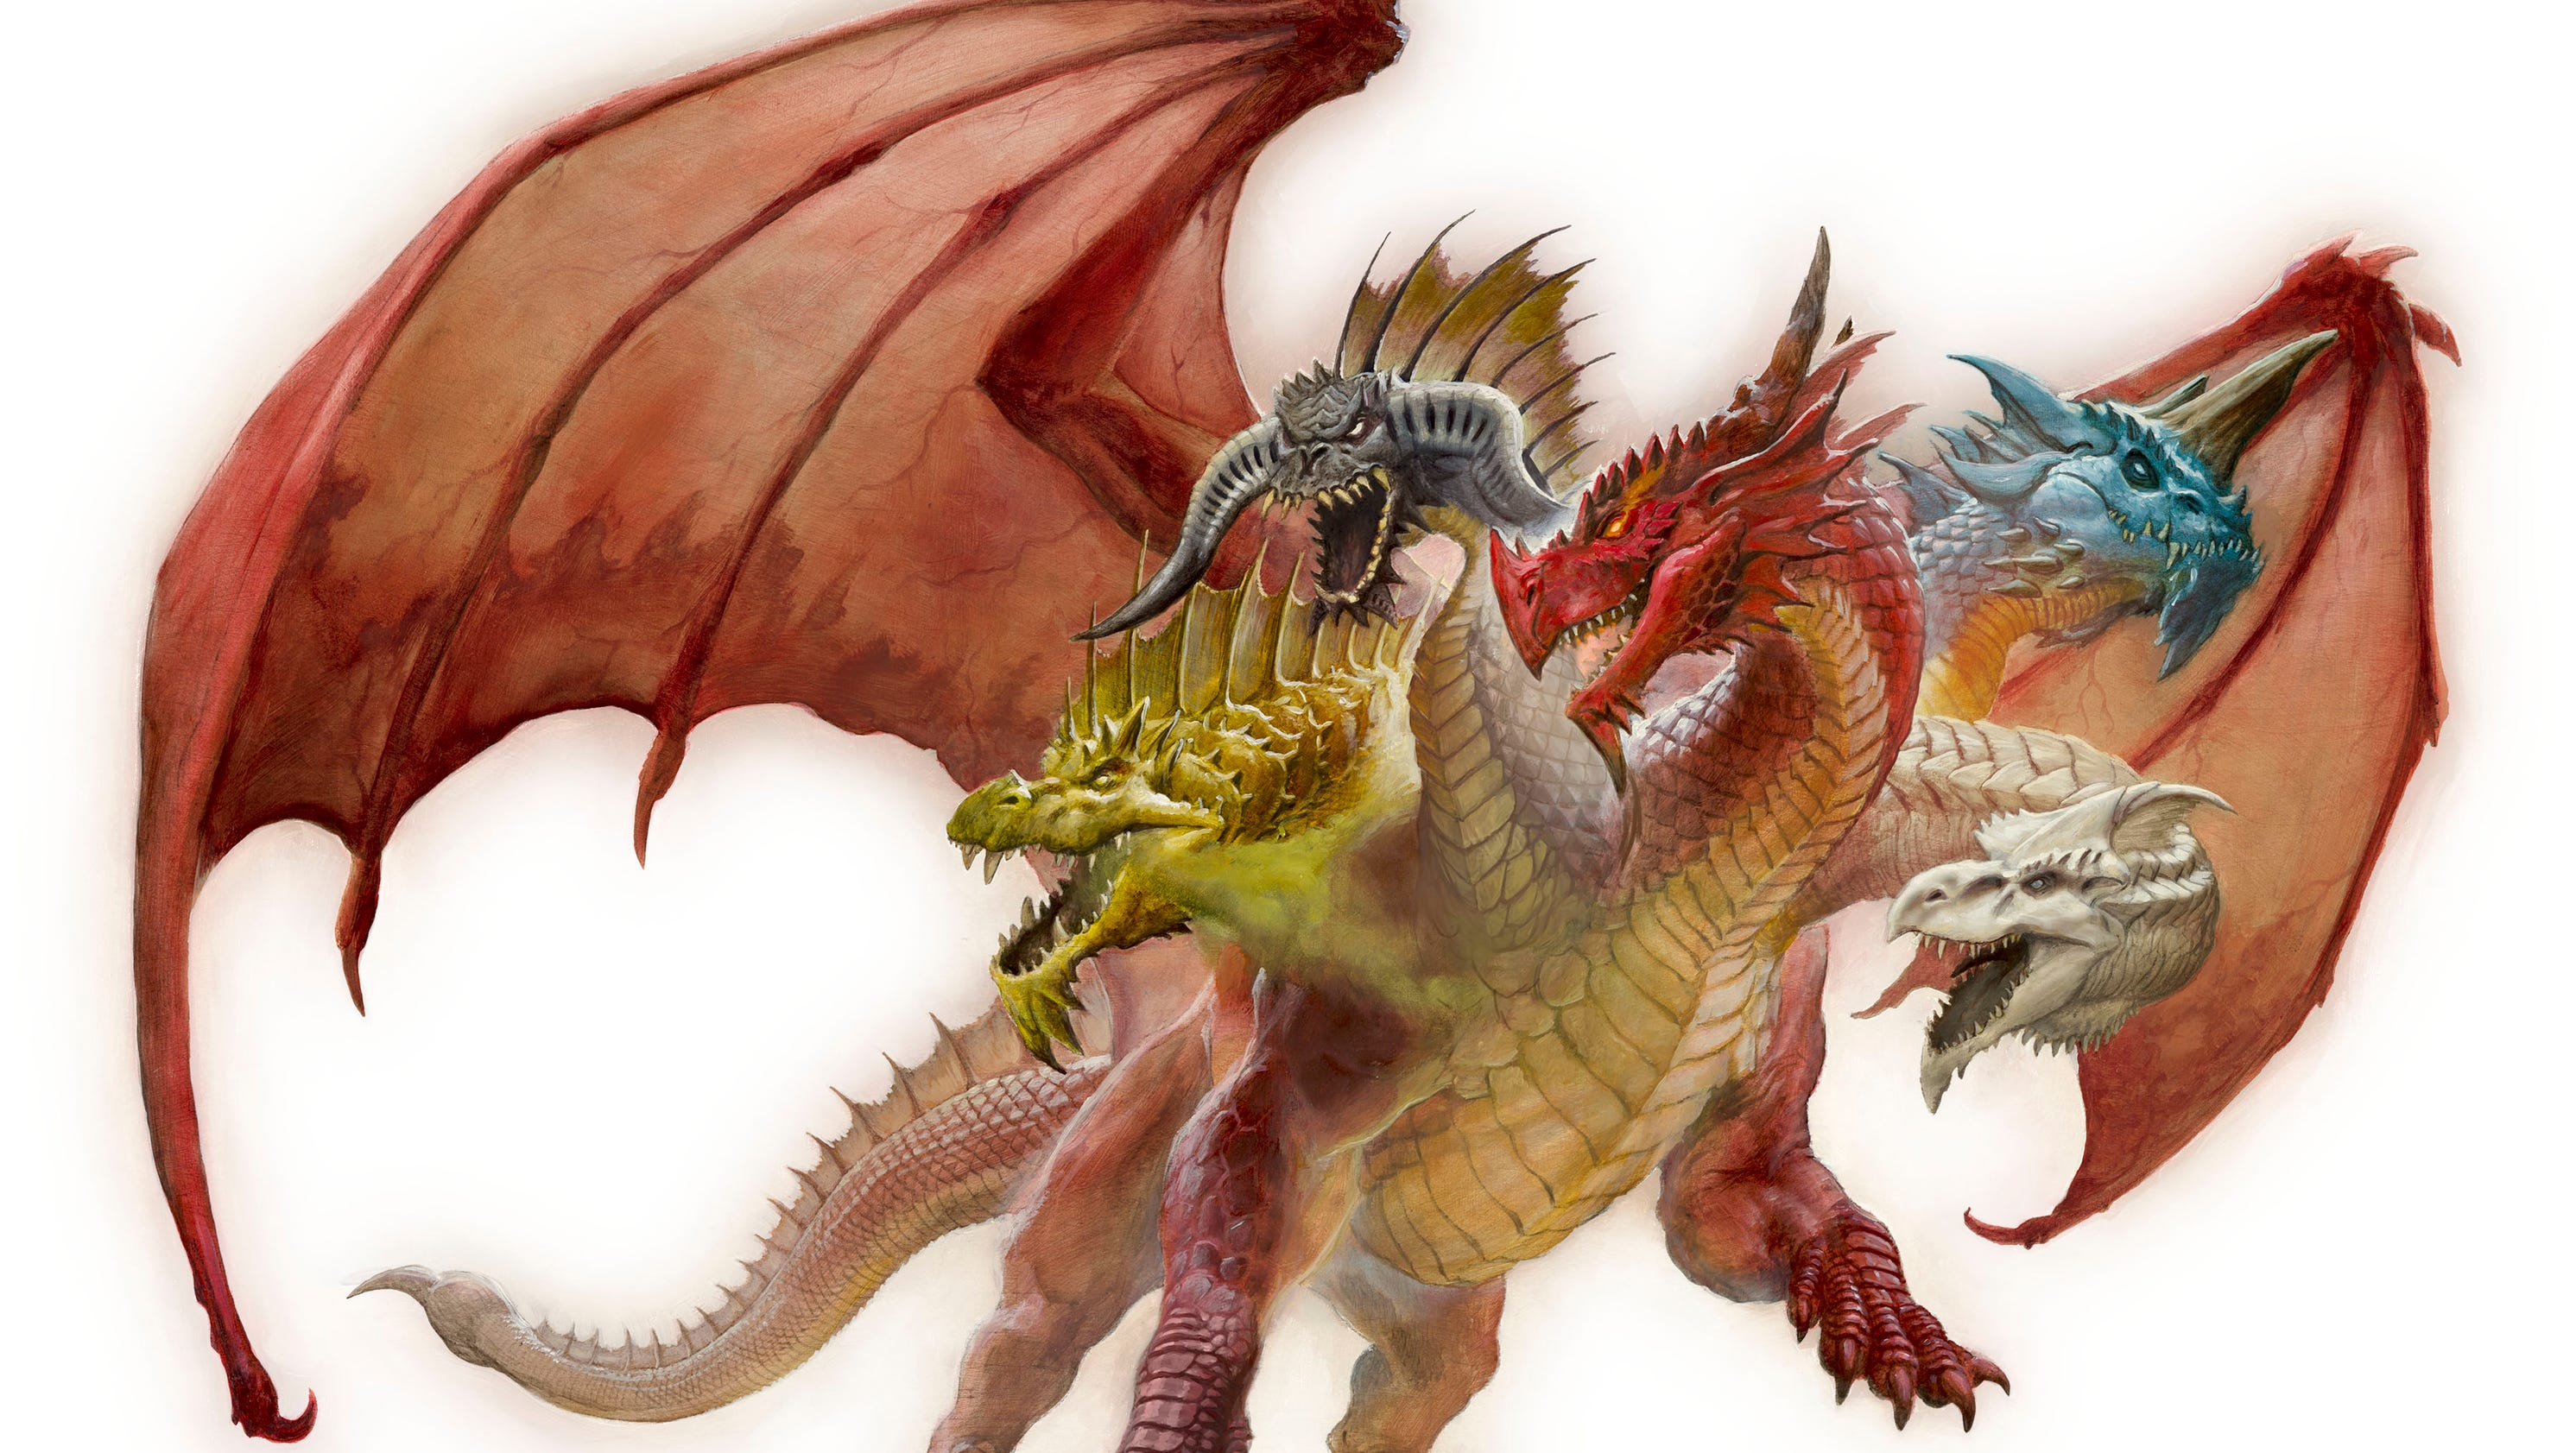 Dnd Red Dragon: Details Of Next 'Dungeons & Dragons' Revealed